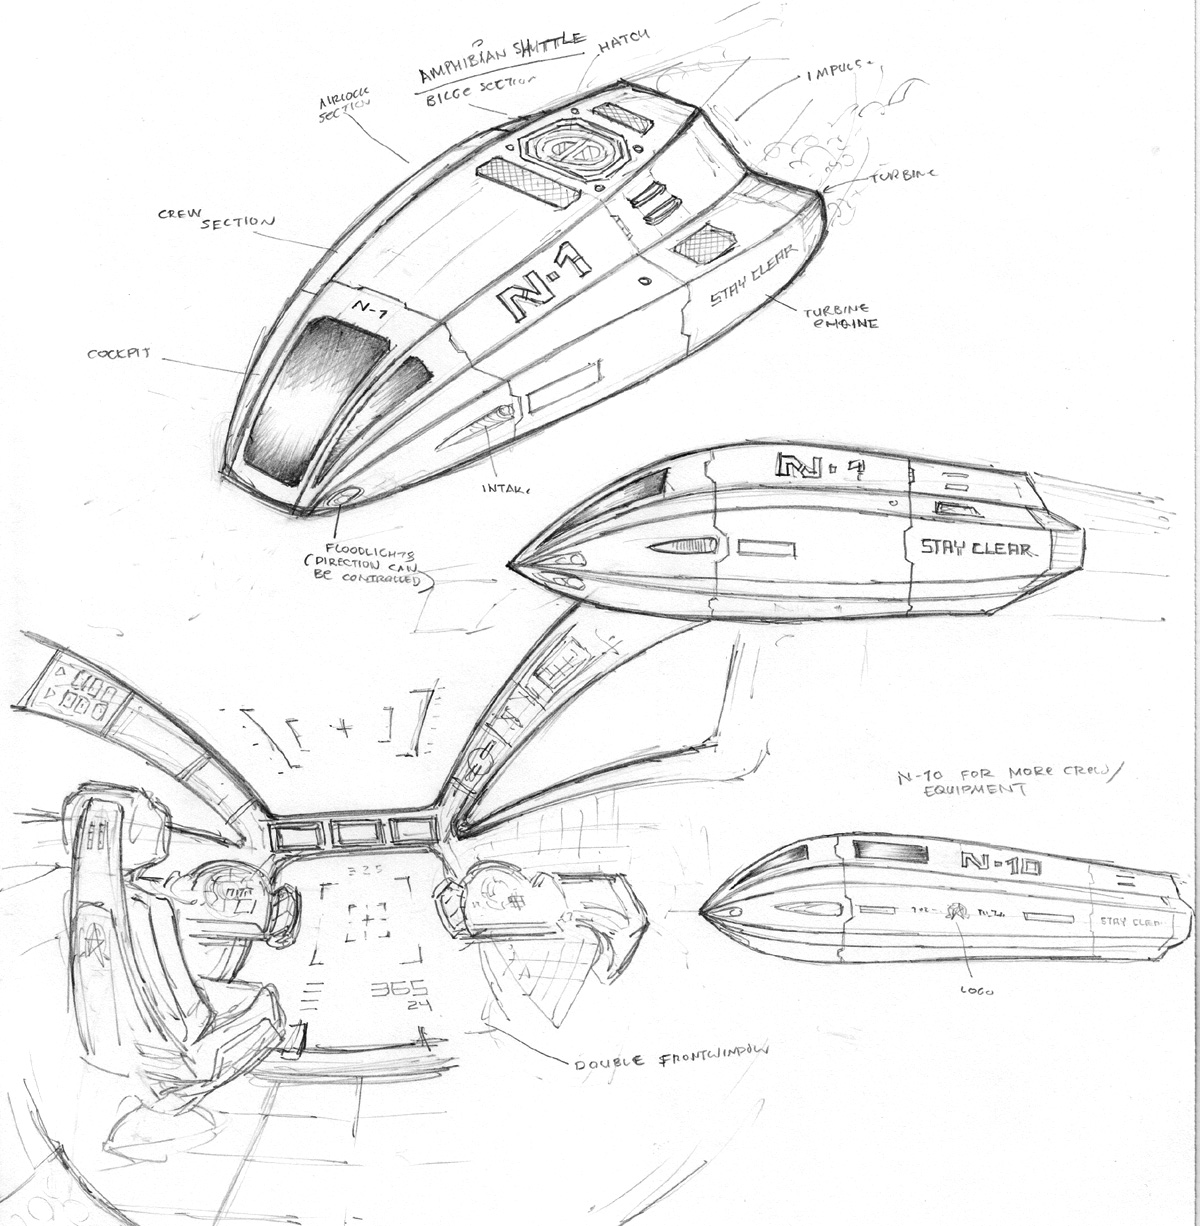 amphibious_shuttle_by_neumatic-d4xs9j1.jpg